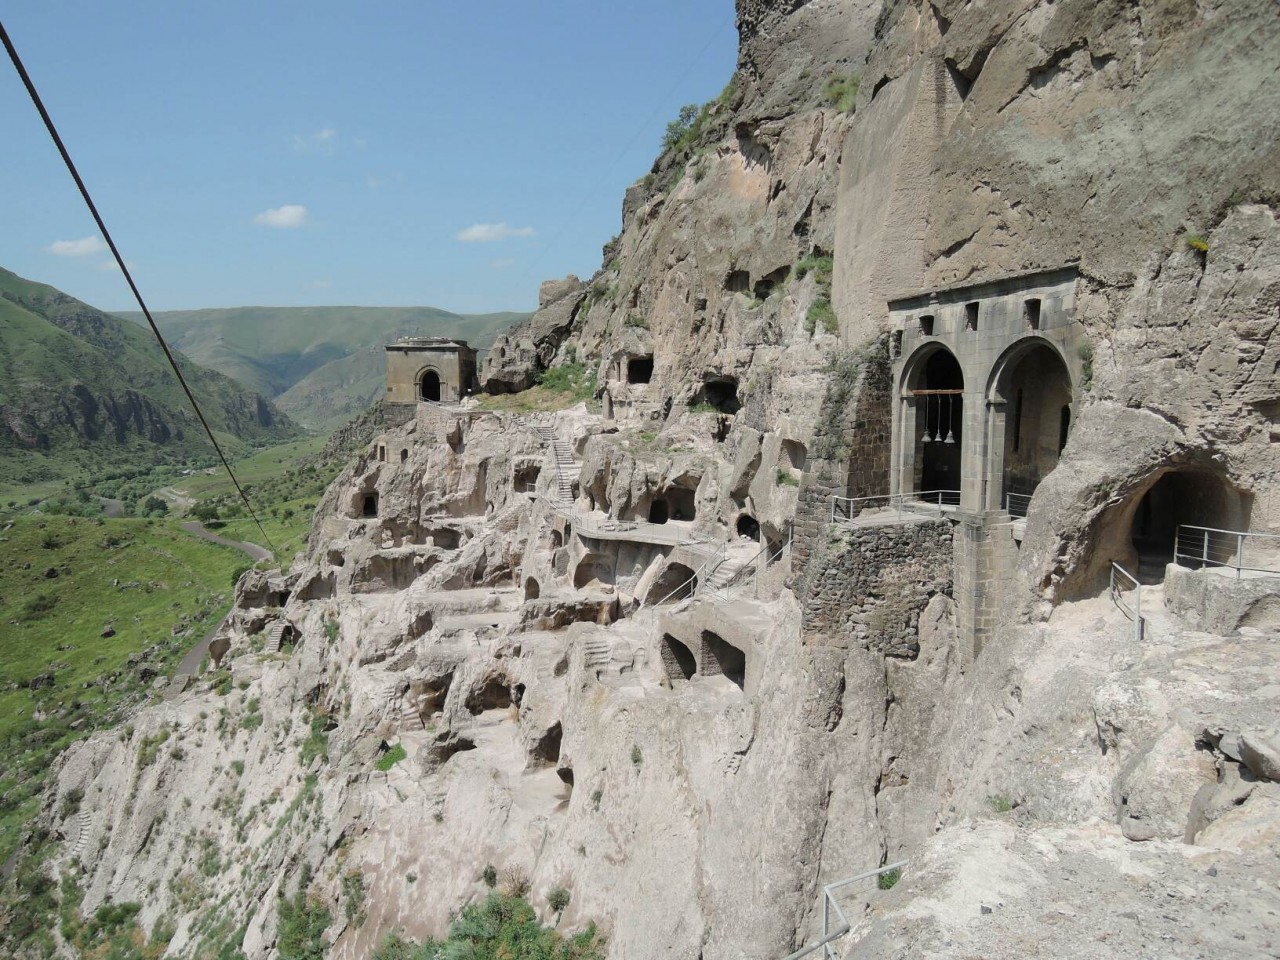 The cave monestary of Vardzia